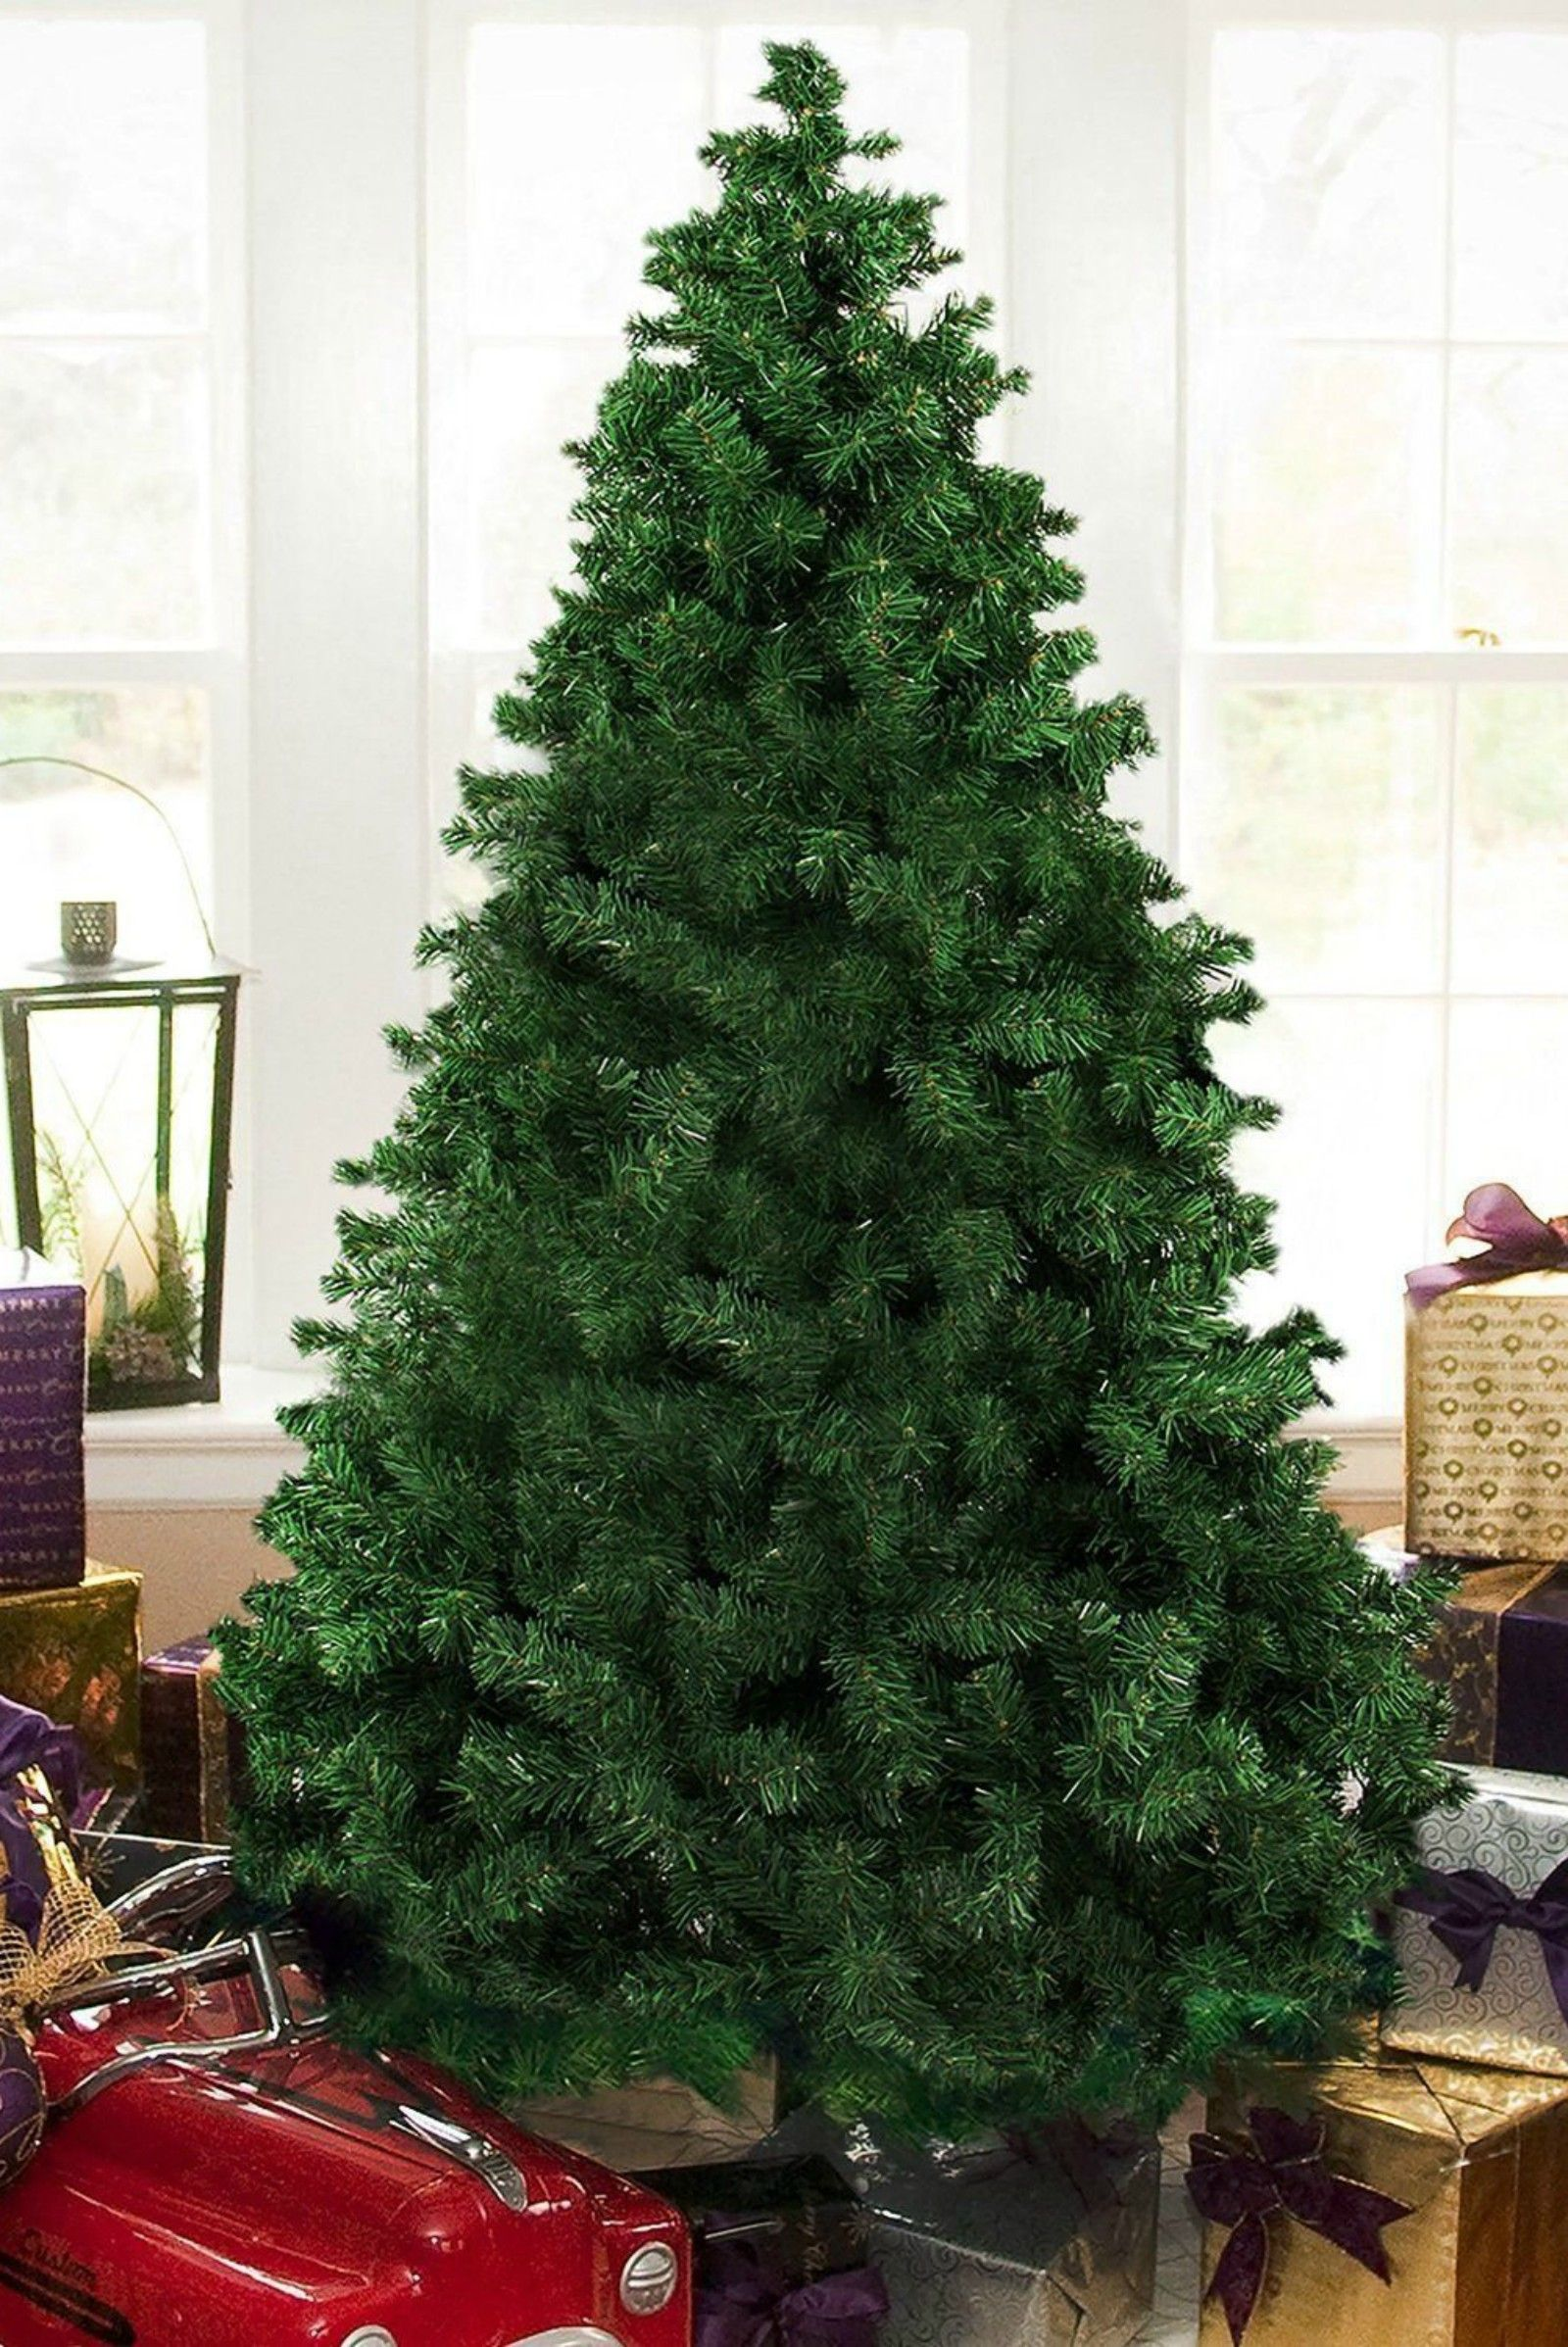 11 Best Artificial Christmas Trees - Where to Buy Fake Christmas Trees